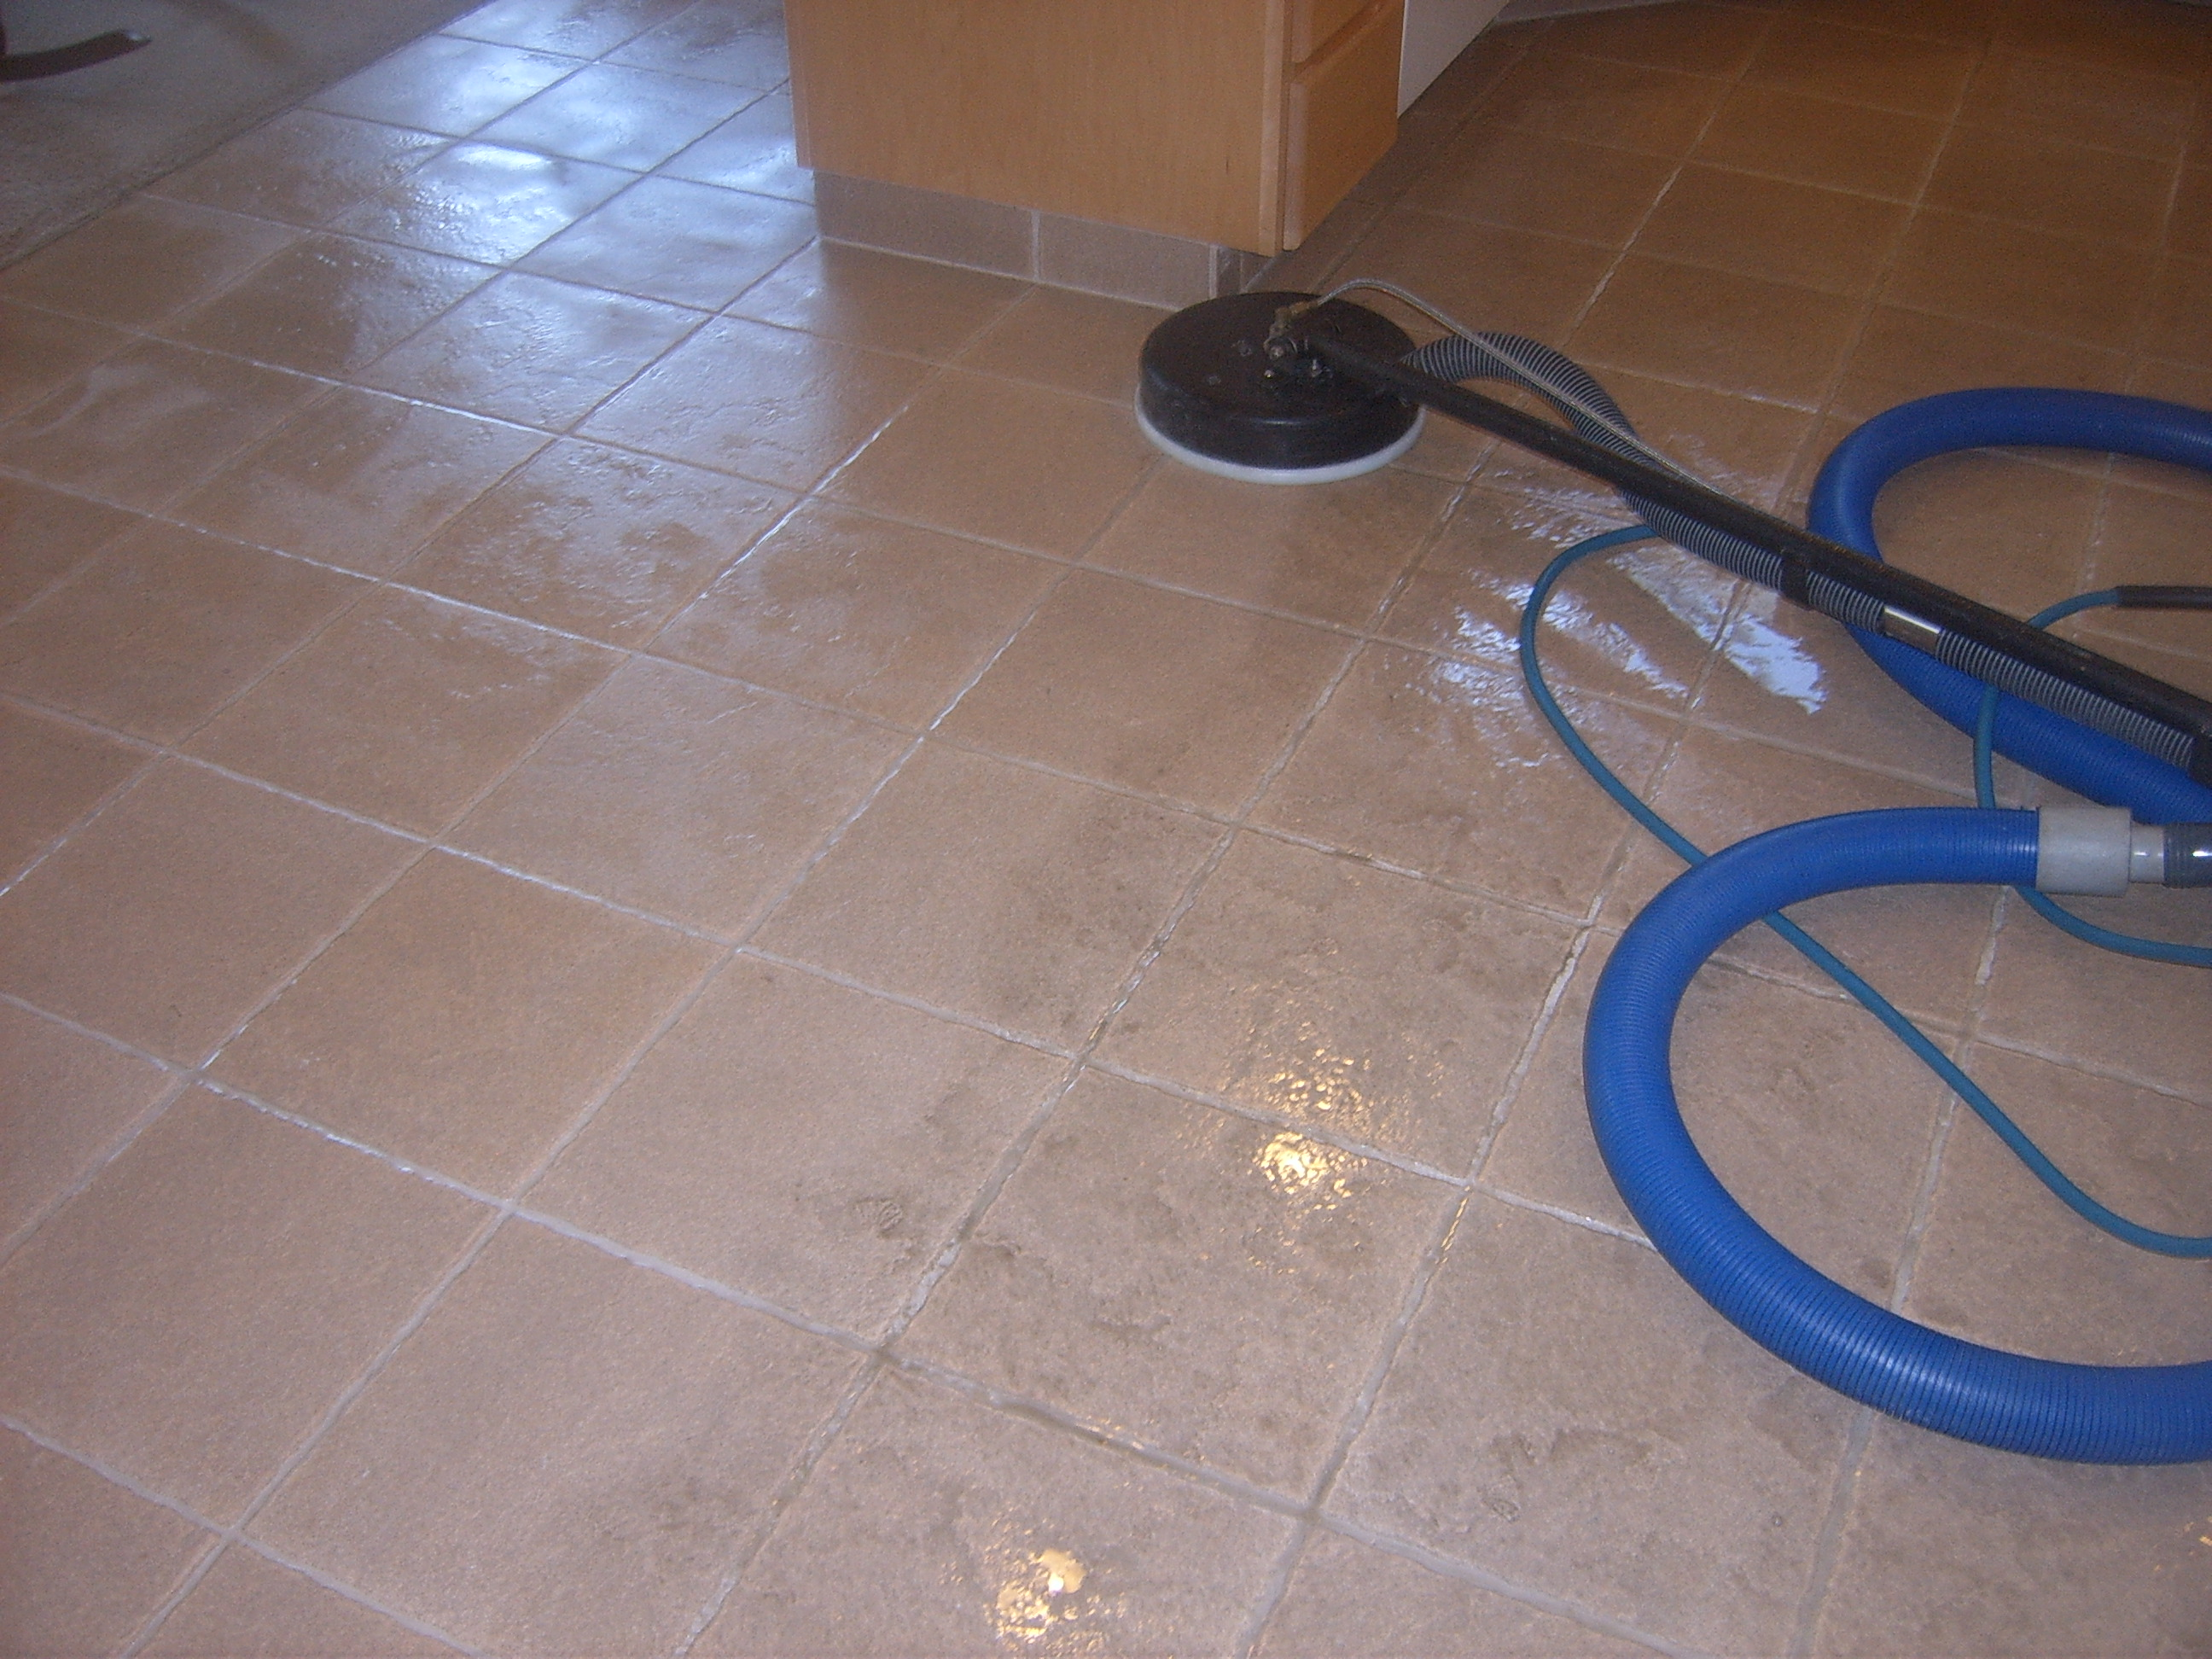 Ceramic Tile Grout Cleaning Cleaining In A Kitchen Can You See The Difference